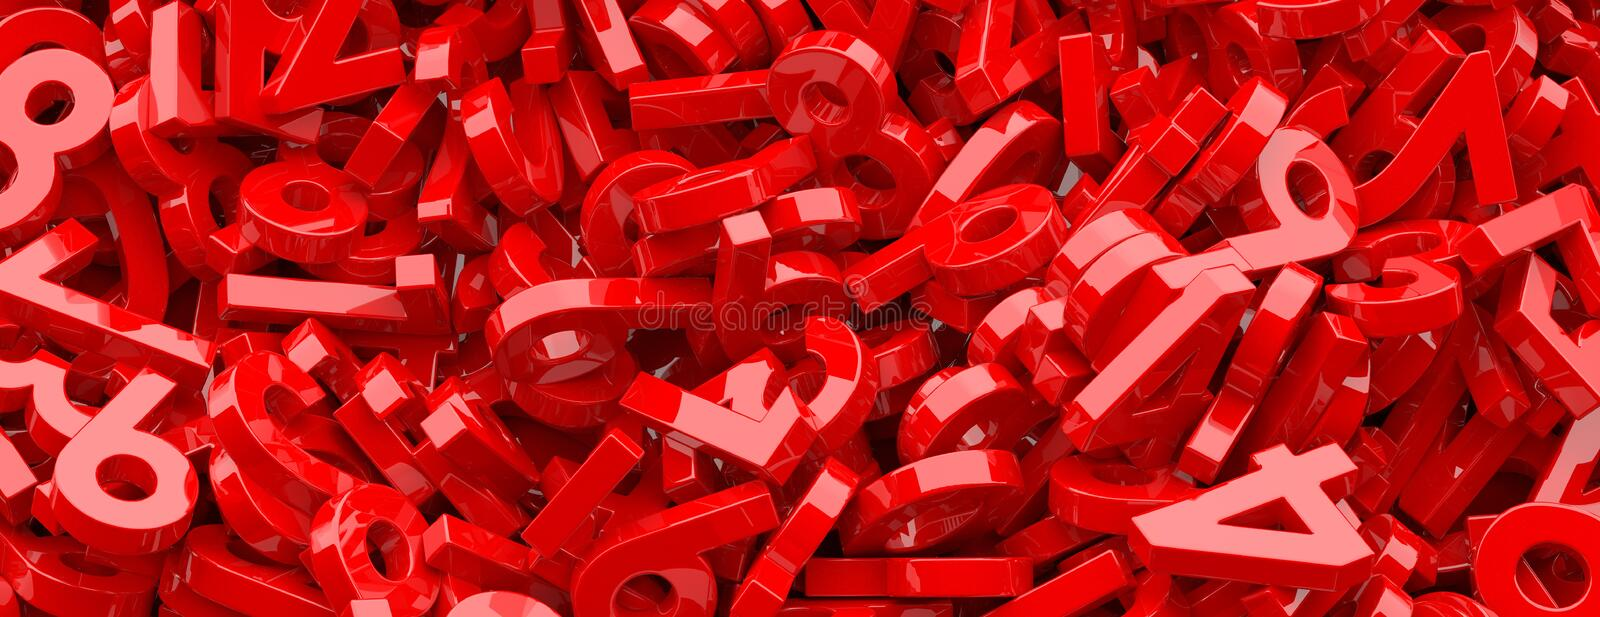 Education, maths, calculation concept. Shiny red figures numbers background, banner. 3d illustration royalty free illustration